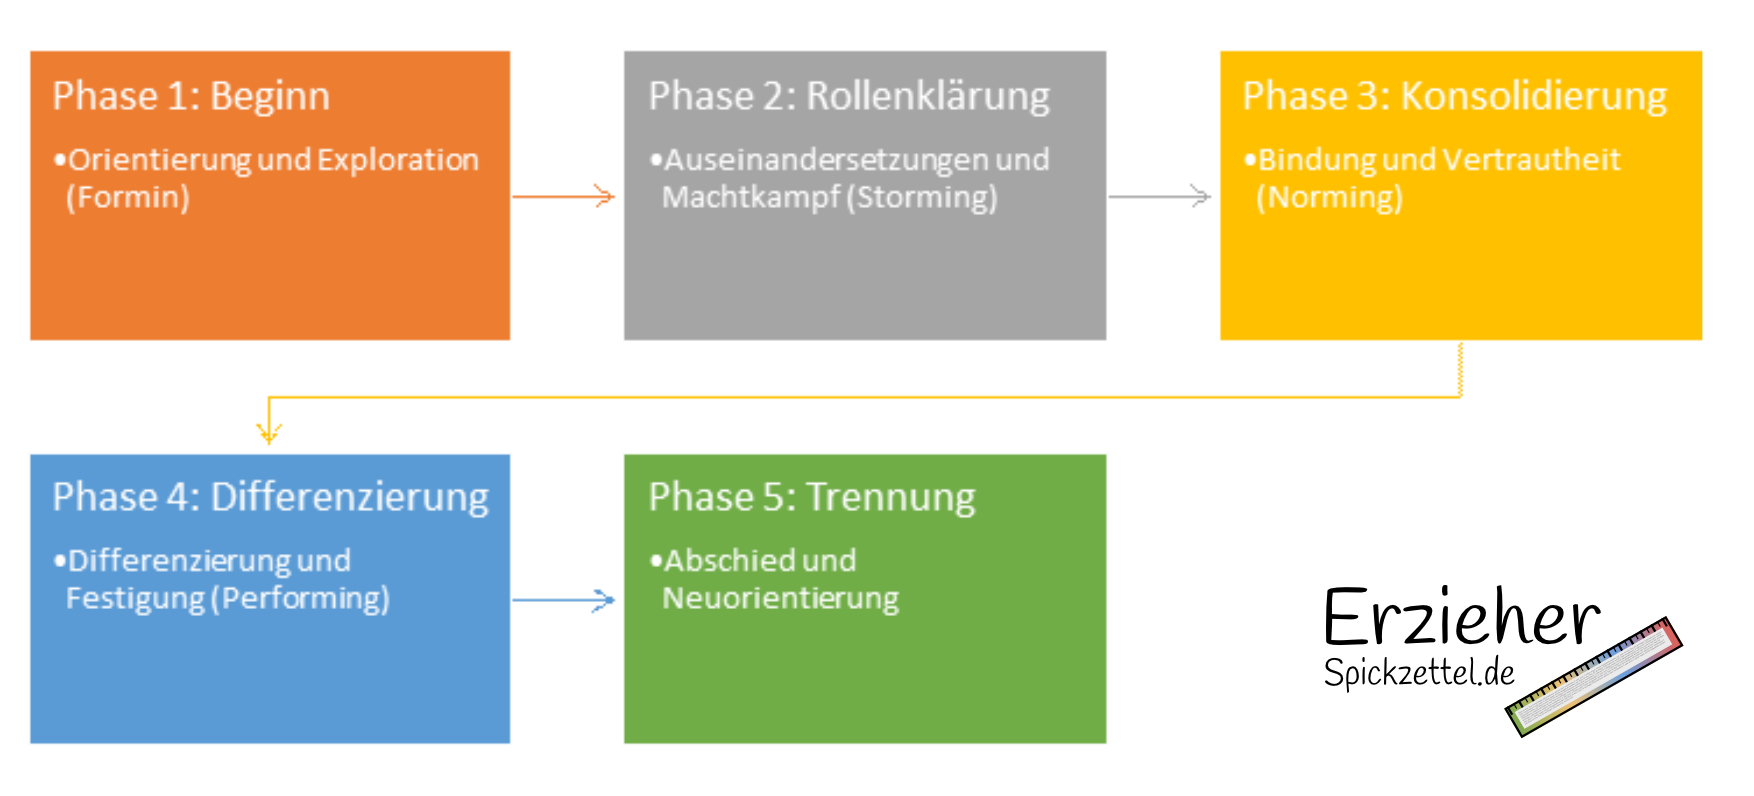 Gruppenphasen - Phasen 1-5 - Formin - Storming - Norming - Performing Trennung - Erziehung - Kita - Kinder